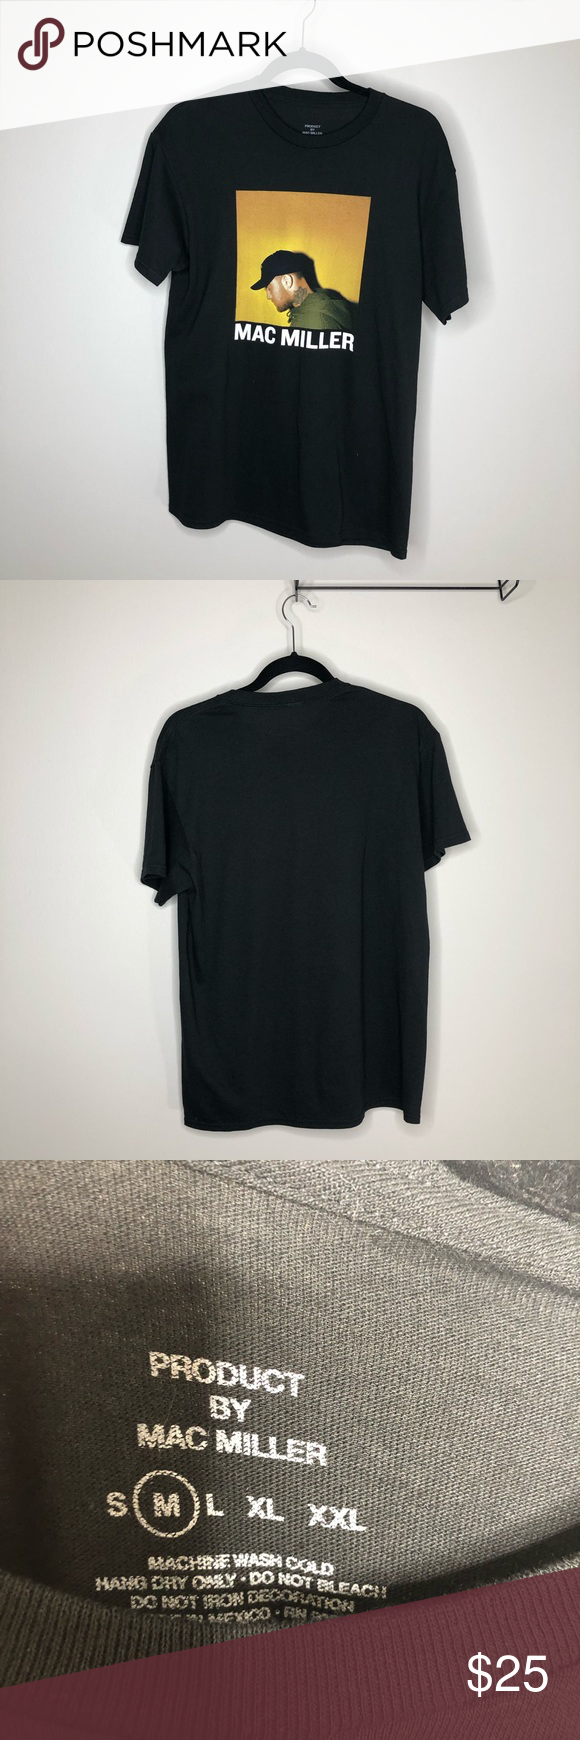 Mac Miller Side Profile T-Shirt Mac Miller Side Profile T-Shirt Product of Mac Miller Shirts Tees - Short Sleeve #macmiller Mac Miller Side Profile T-Shirt Mac Miller Side Profile T-Shirt Product of Mac Miller Shirts Tees - Short Sleeve #macmiller